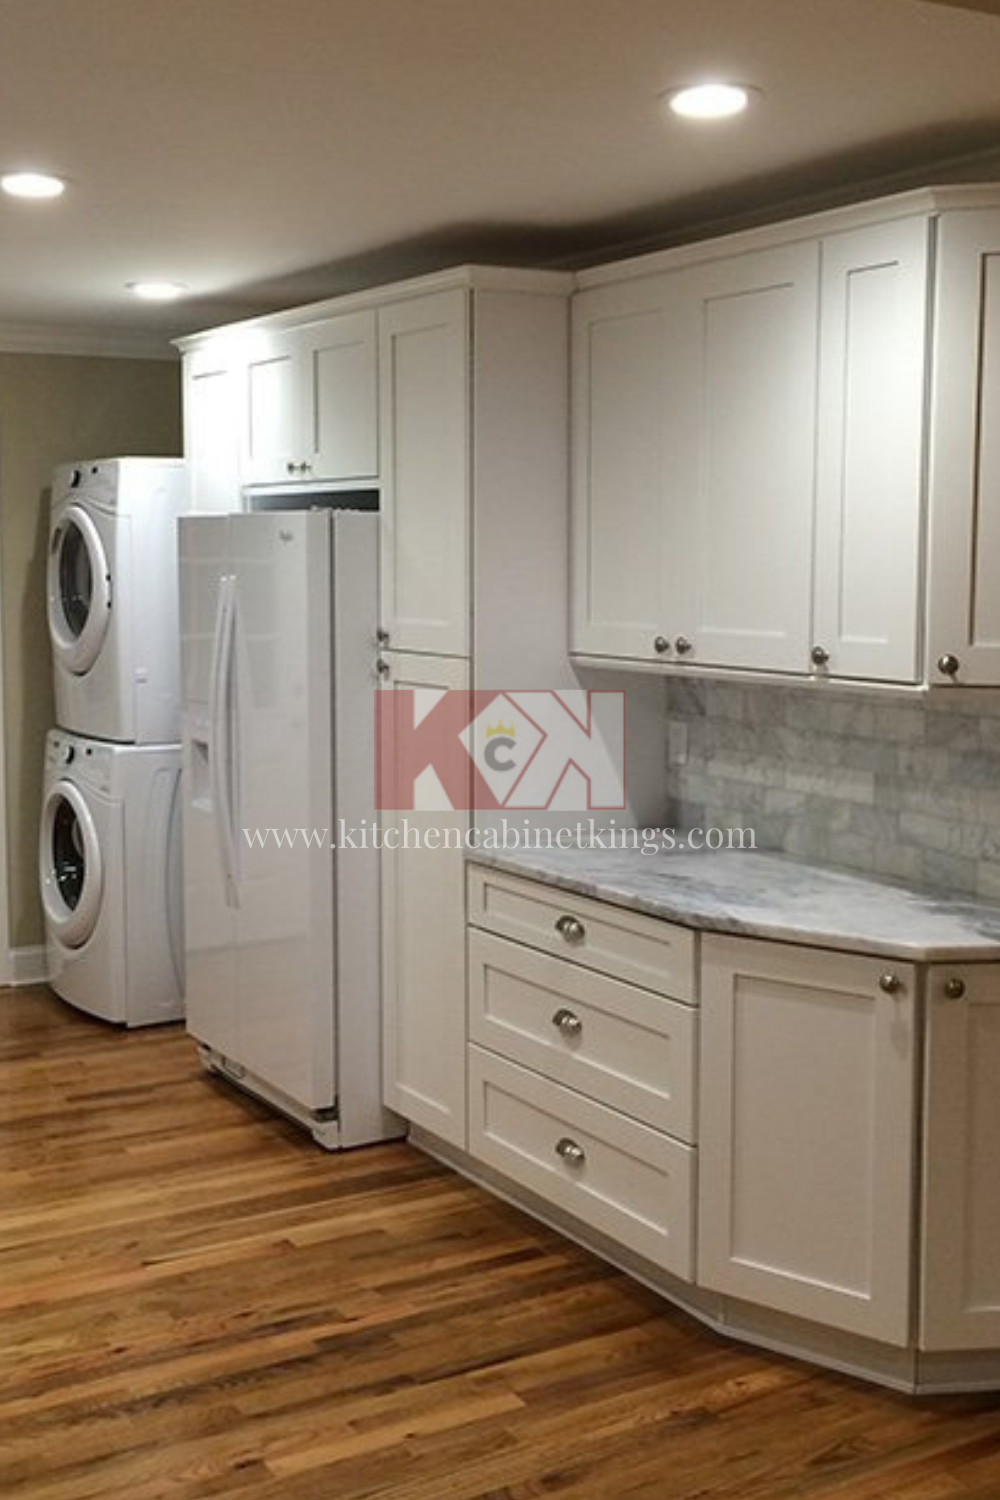 Ice White Shaker Kitchen Cabinets In 2020 White Shaker Kitchen Cabinets White Shaker Kitchen Kitchen Cabinets